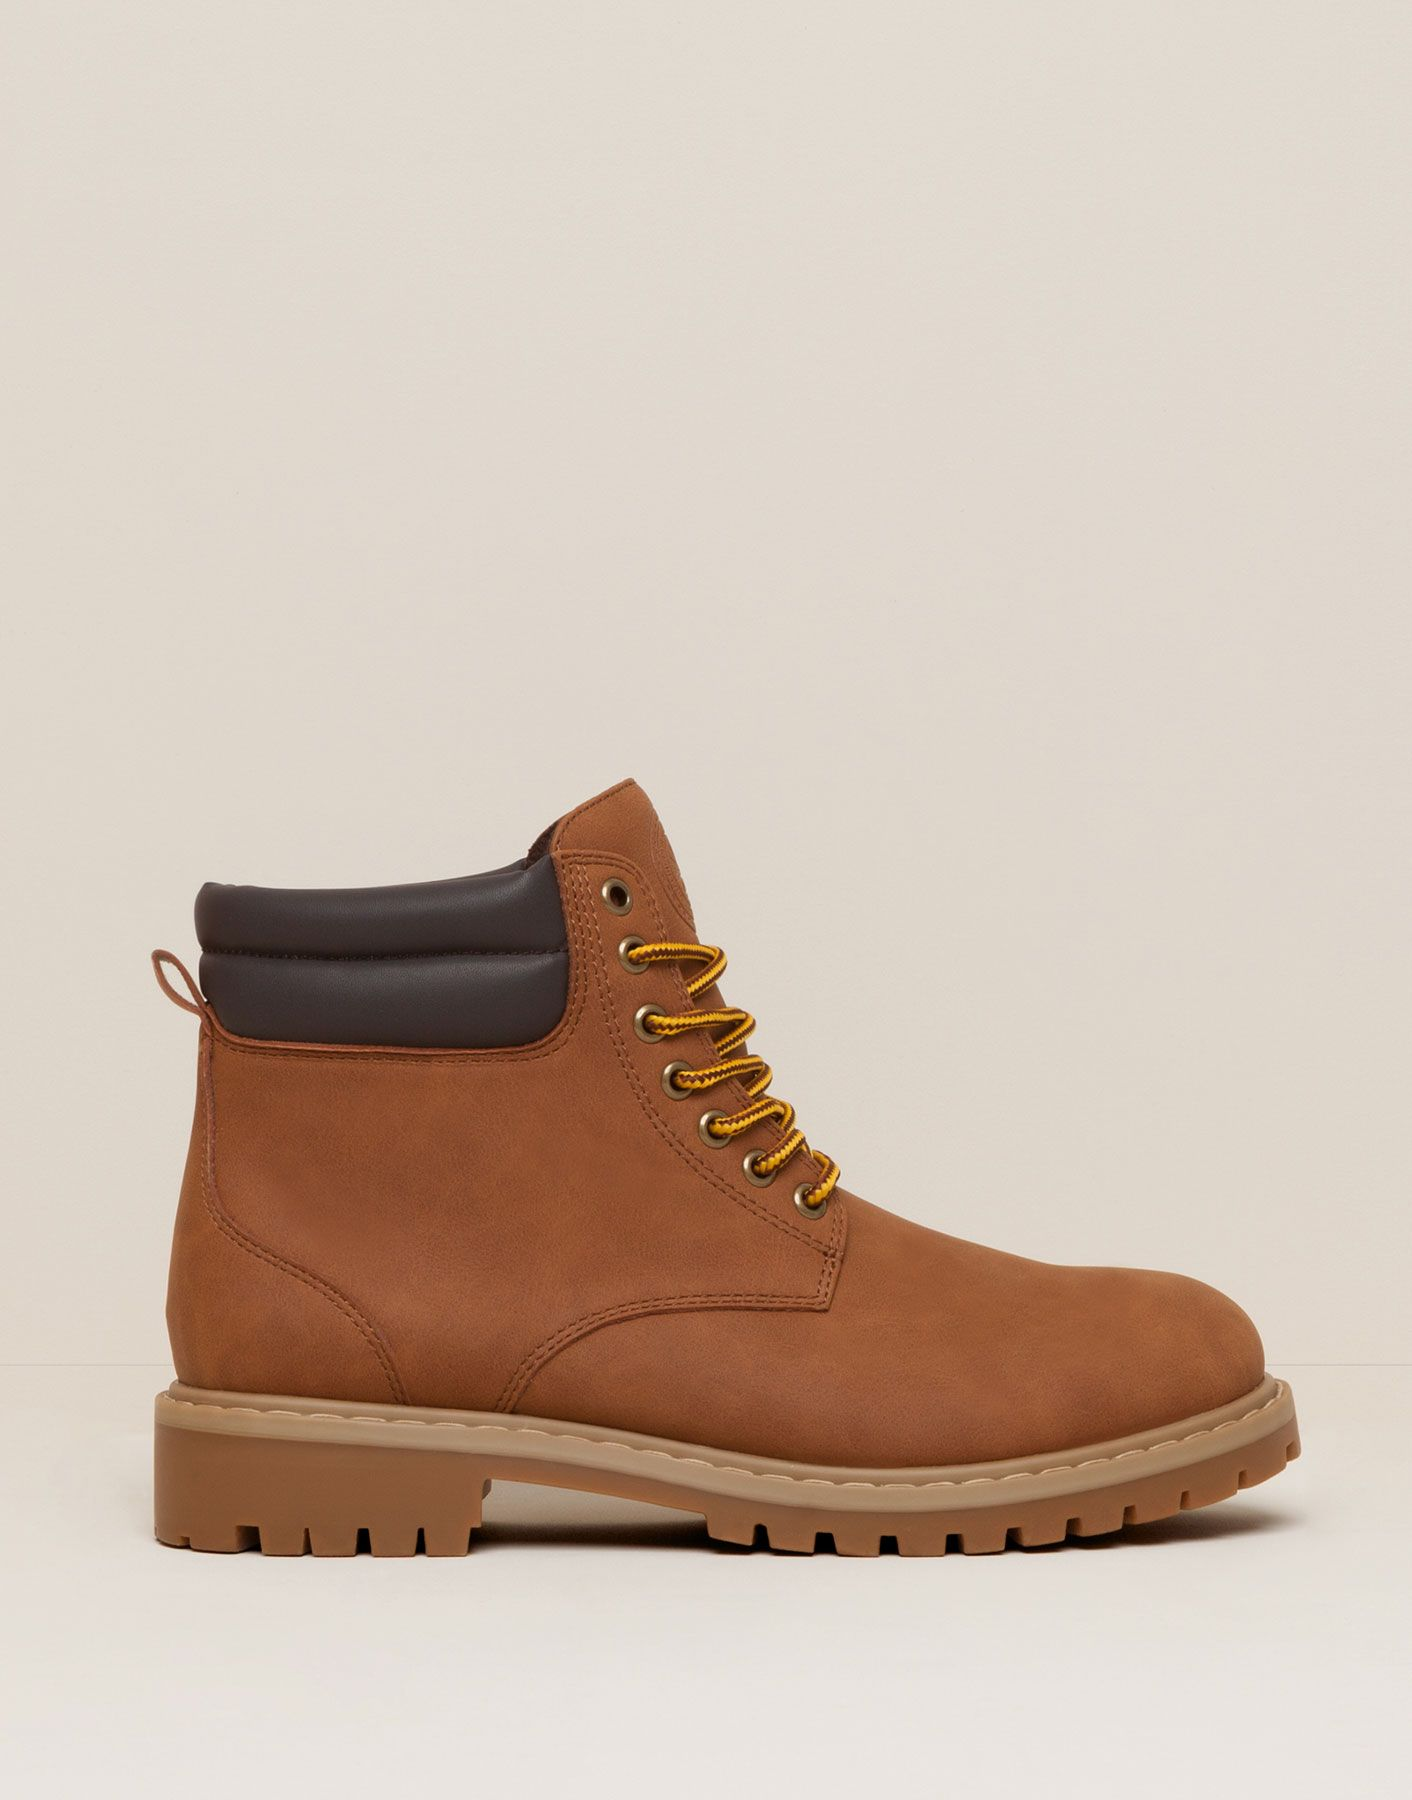 Bota Urbana Botas Y Botines Zapatos Pull Bear Colombia Boots Timberland Boots Shoes